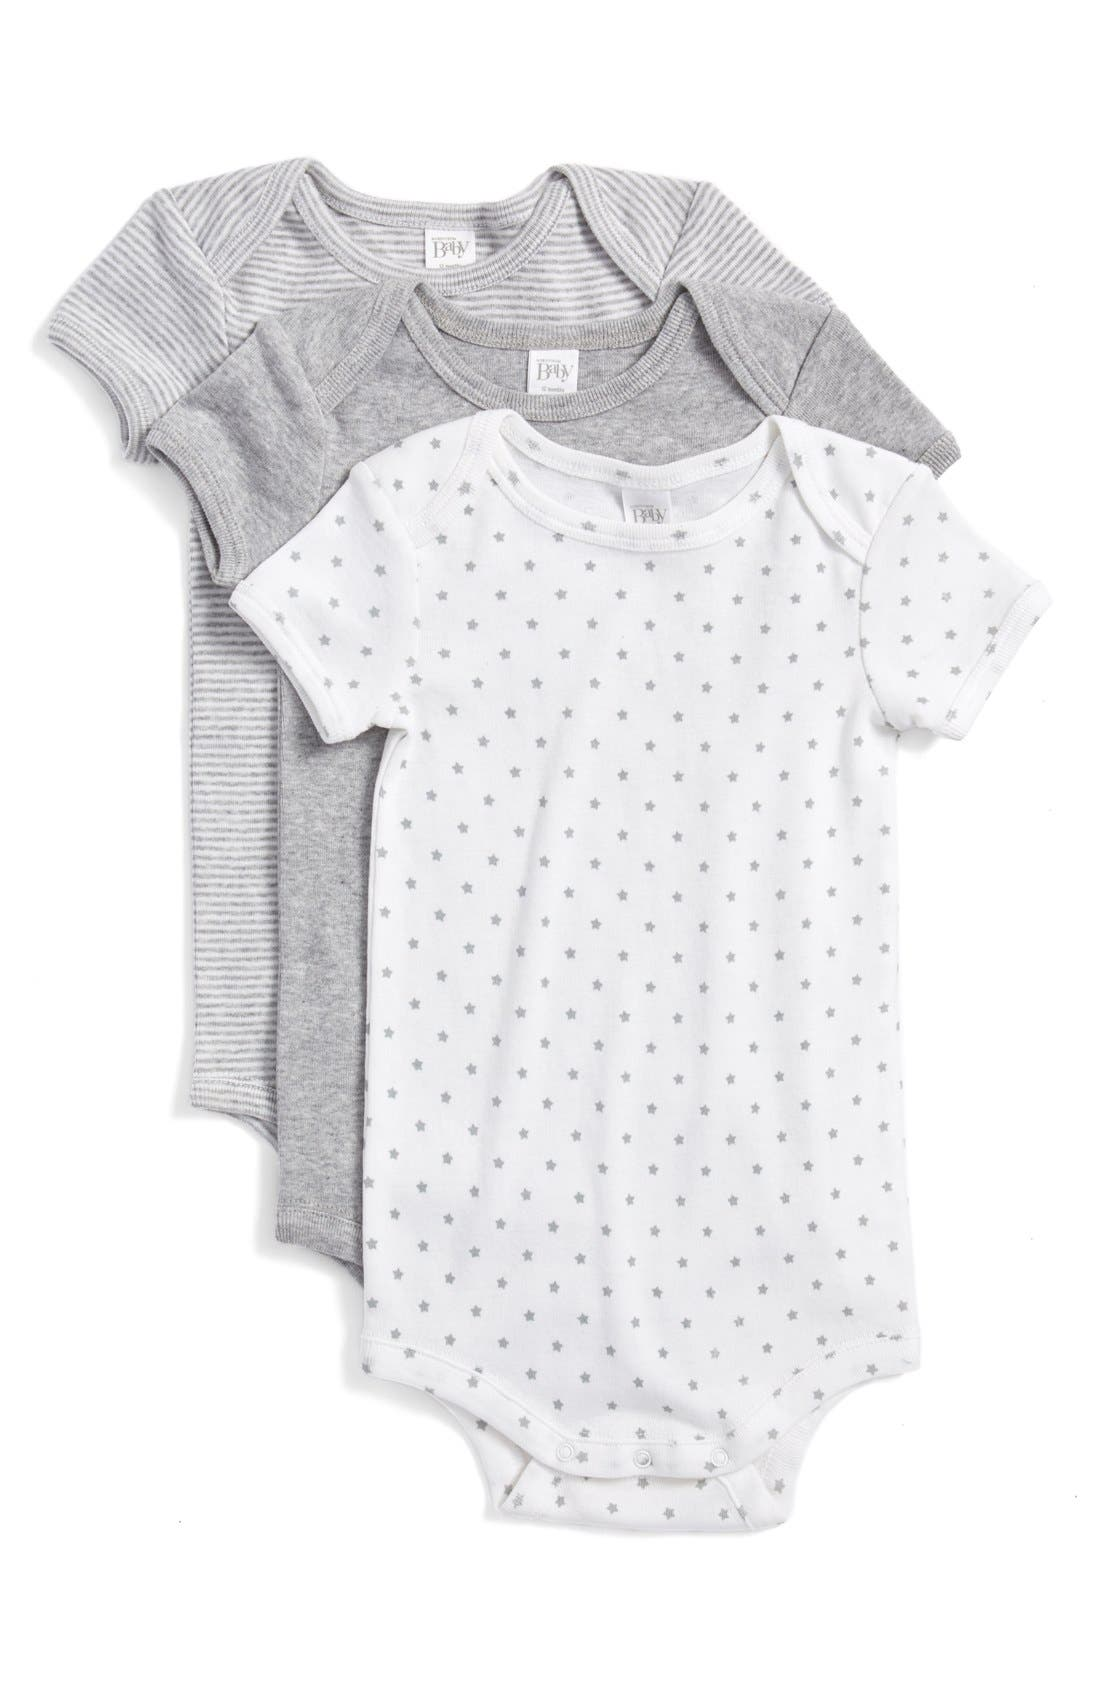 NORDSTROM BABY, Cotton Bodysuits, Main thumbnail 1, color, GREY ASH HEATHER PACK